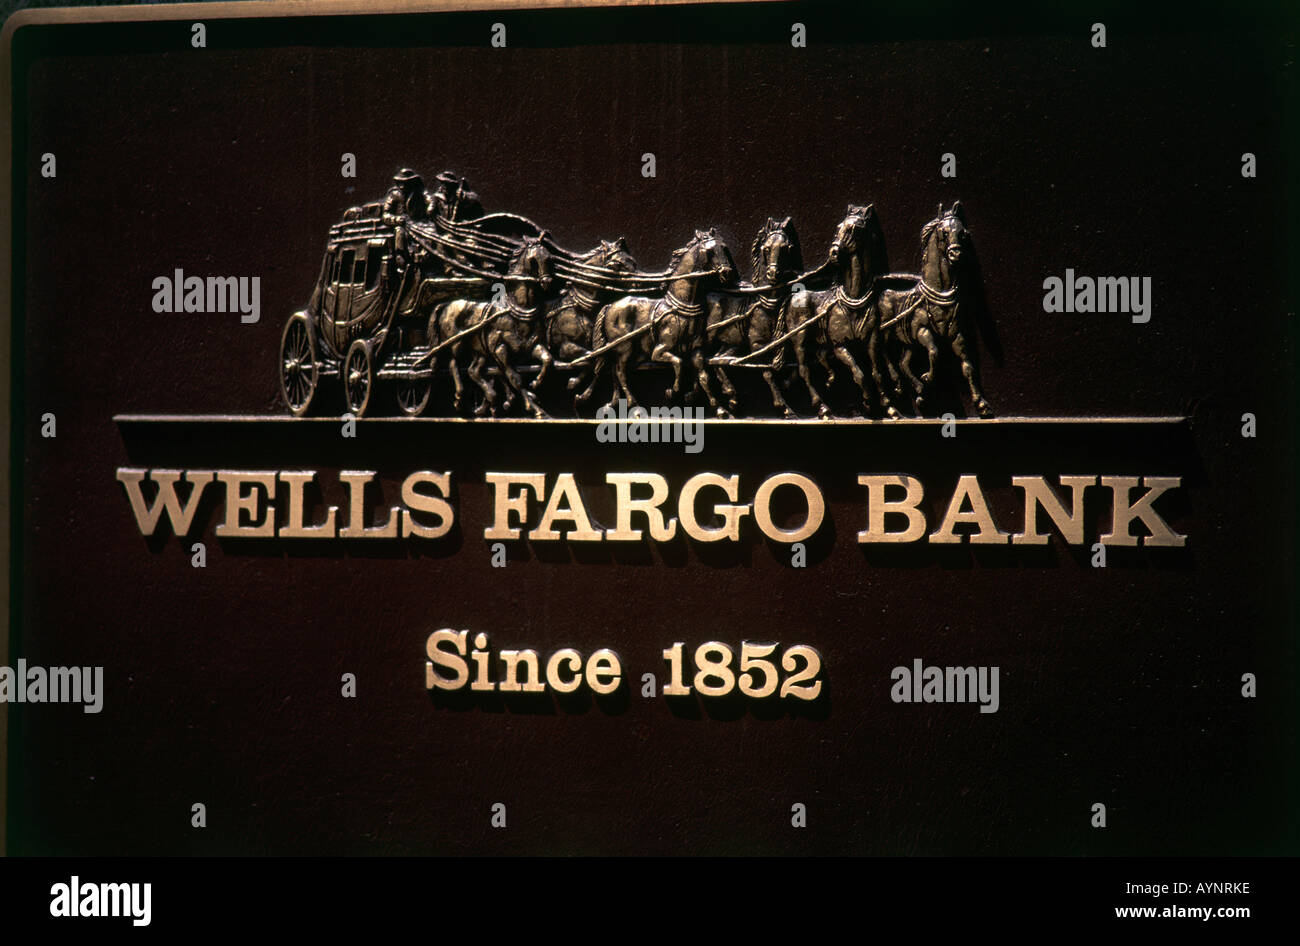 Gold lettering on a black background and an illustration of a stagecoach drawn by a team of horses marks the Wells Fargo Bank which was founded in 1852 as a natural progression from the company s gold shipping and storage services San Francisco - Stock Image